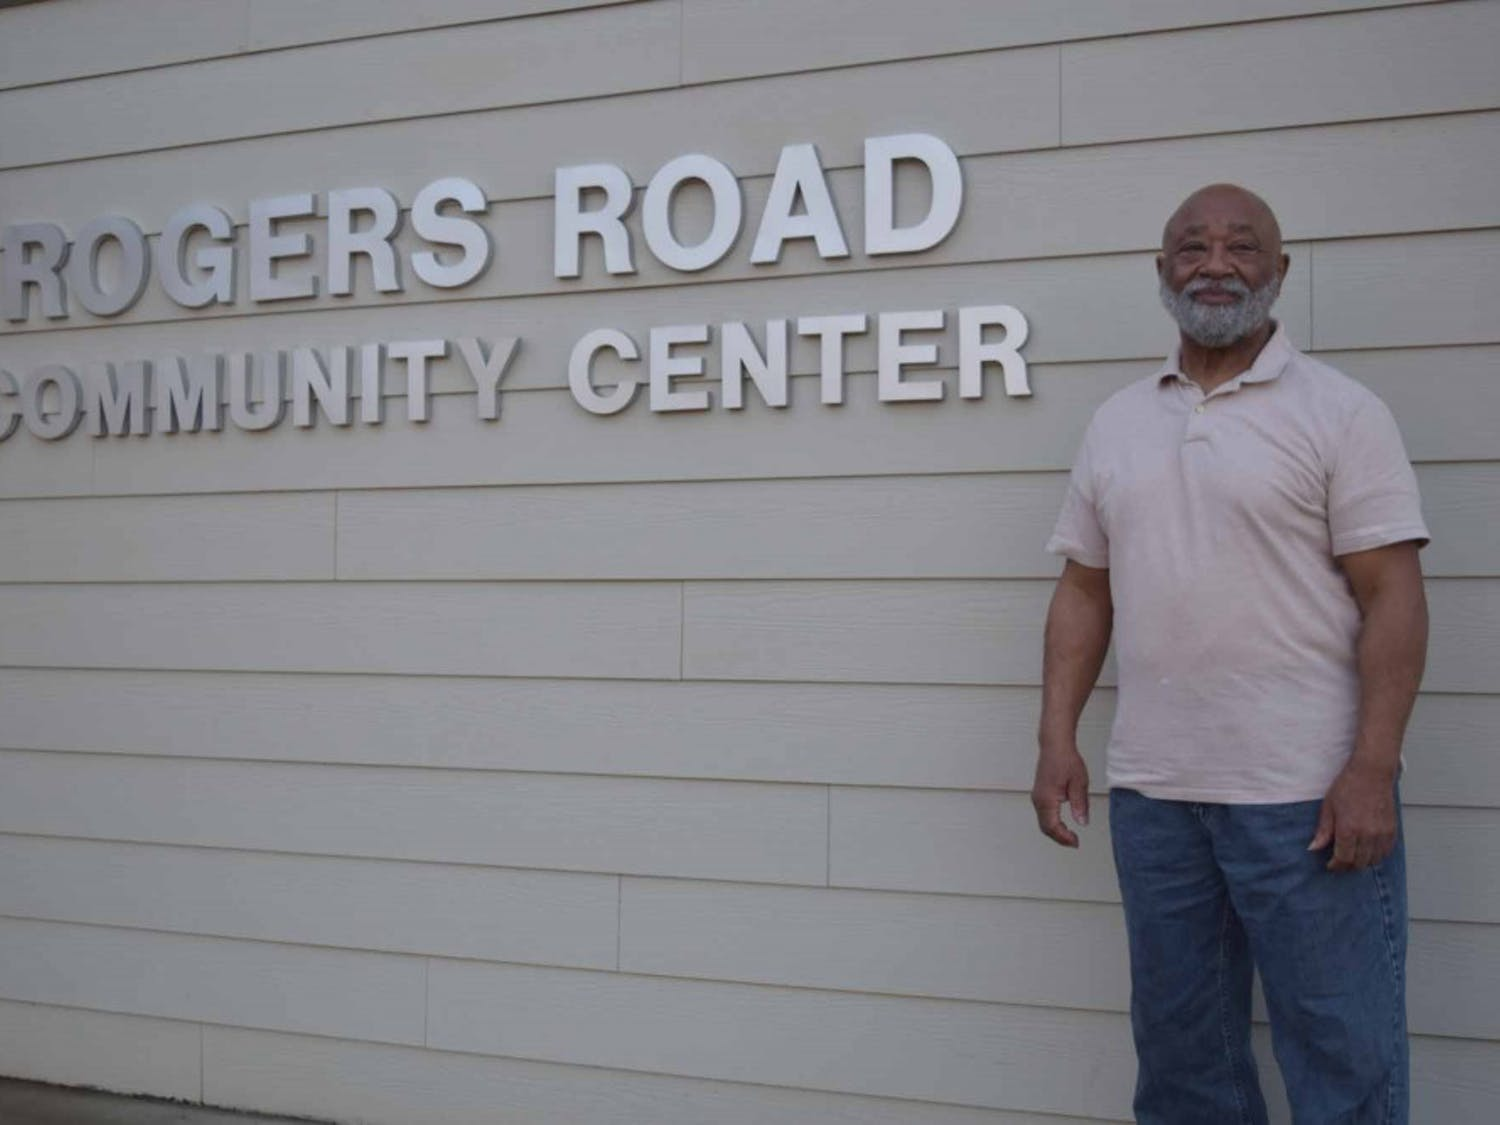 Robert Campbell, the head of the Rogers-Eubanks Neighborhood Association, poses in front of the Rogers Road Community Center, on Thursday, Feb. 21, 2019. Campbell has been part of the Rogers Road Neighborhood Zoning Initiative since the beginning and wants to make sure that the diversity of the community is accounted for during the process. He also says that everyone in the community should be part of the conversation, regardless of what language they speak.